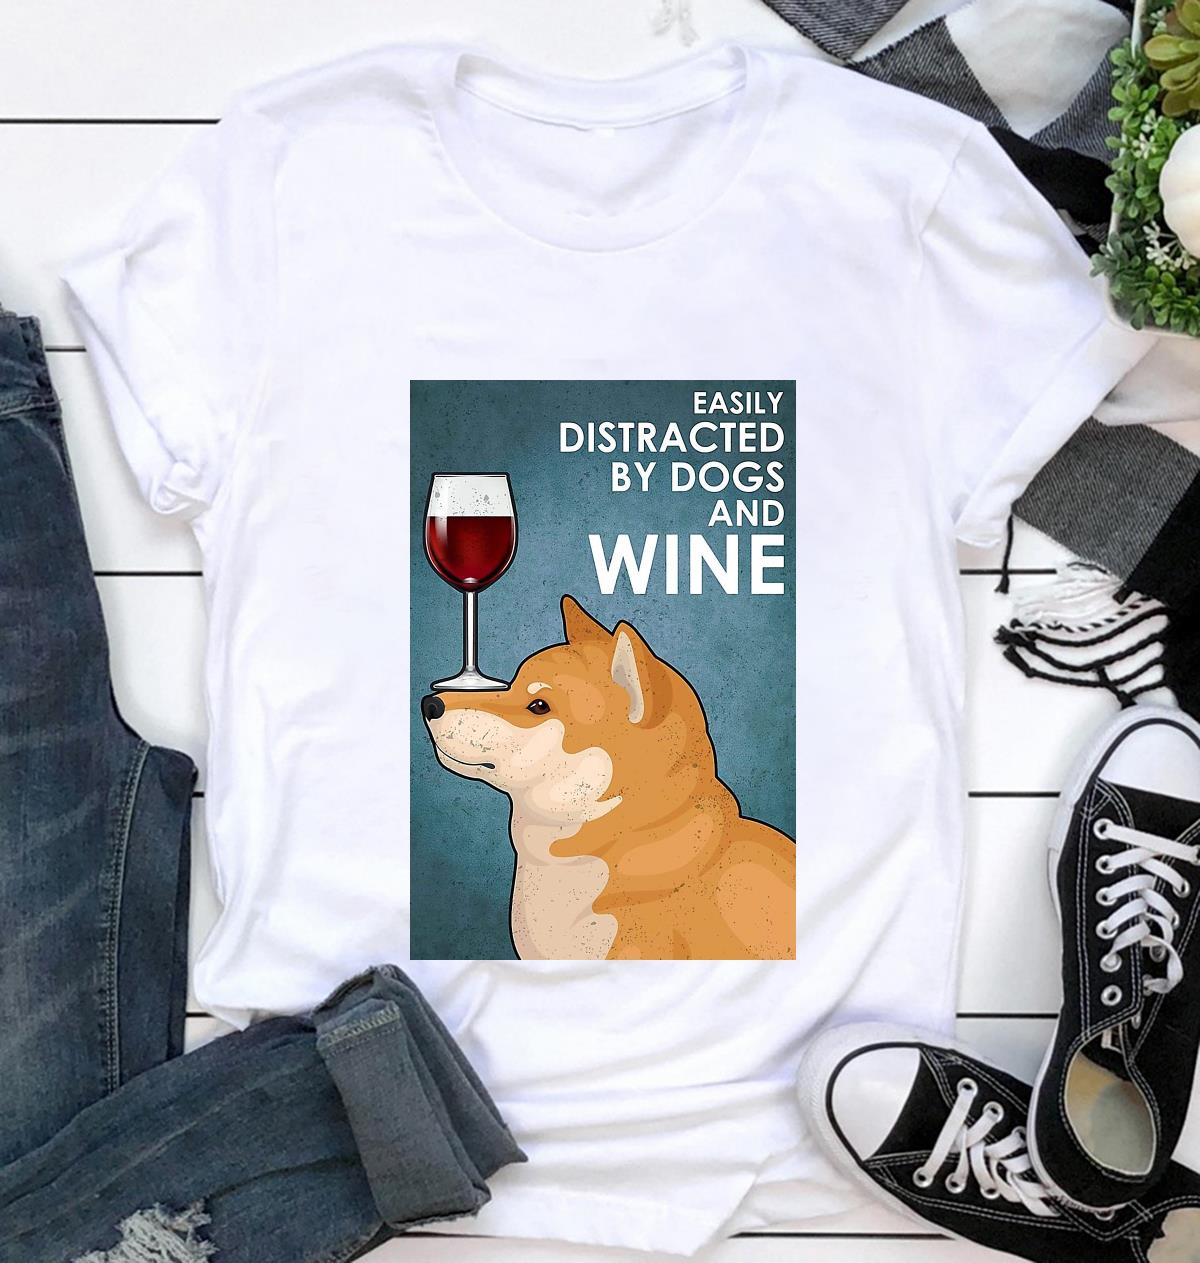 Shiba Inu easily distracted by dogs and wine poster t-shirt